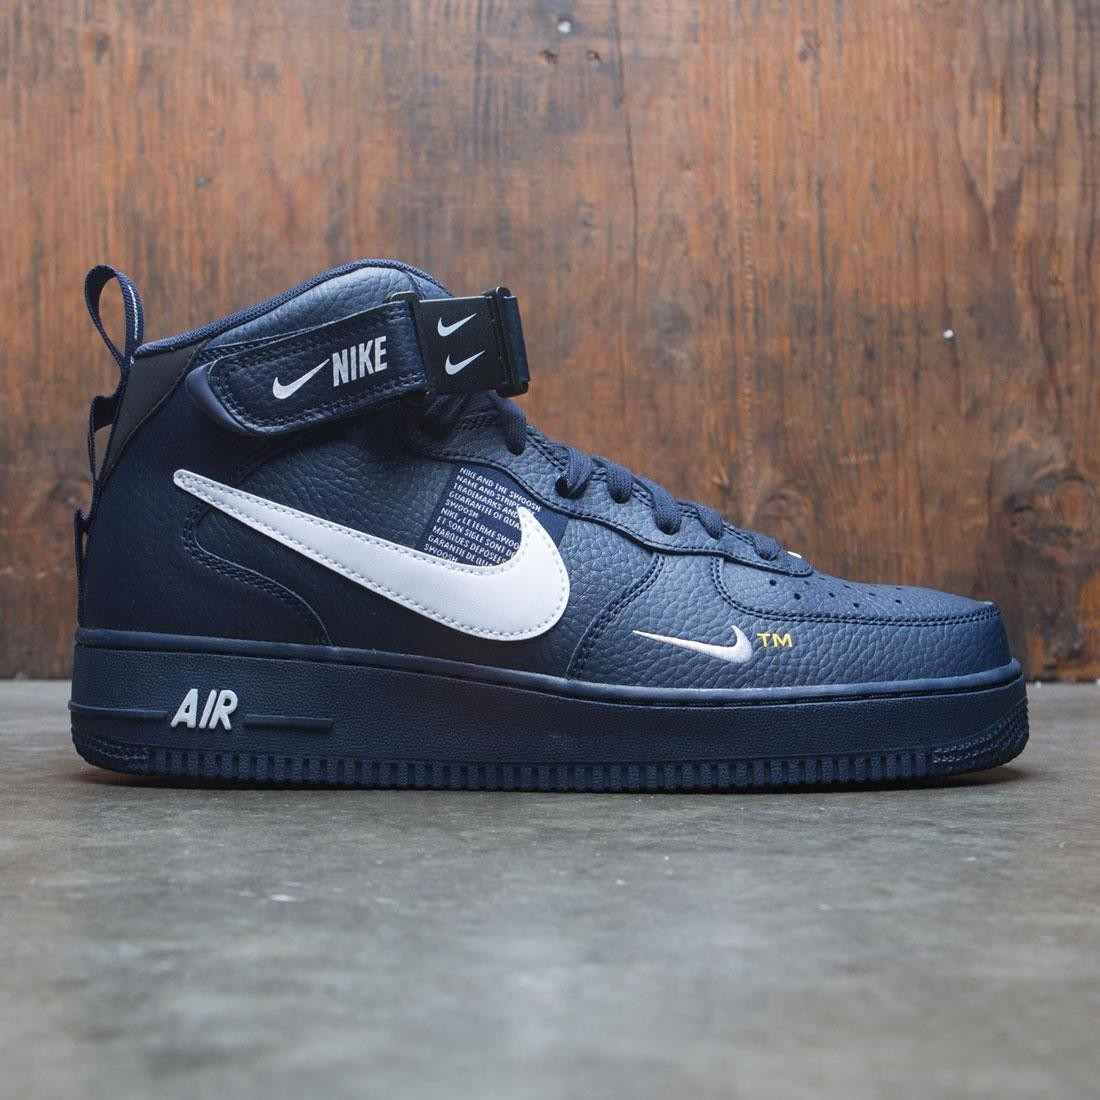 new concept bace0 bbd76 nike men air force 1 mid  07 lv8 obsidian white black tour yellow